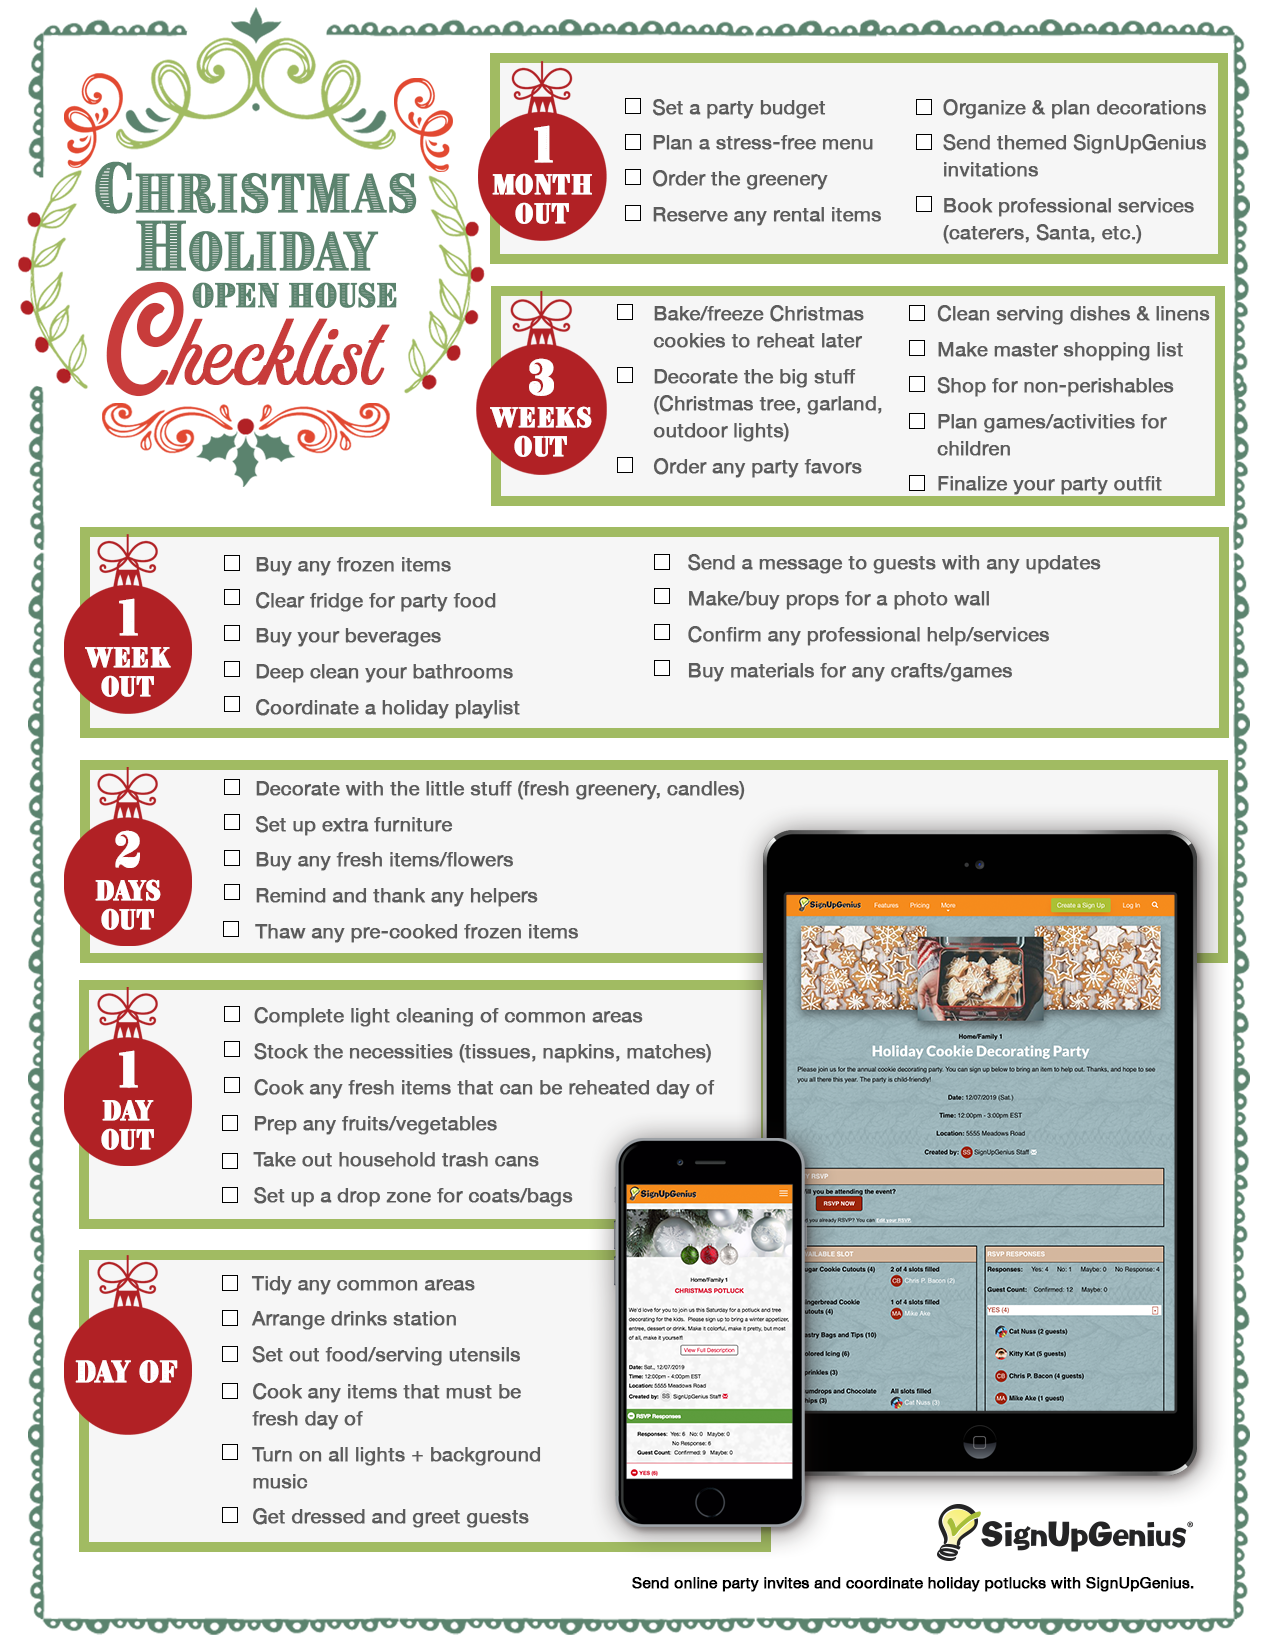 Christmas Holiday Open House Checklist Free christmas